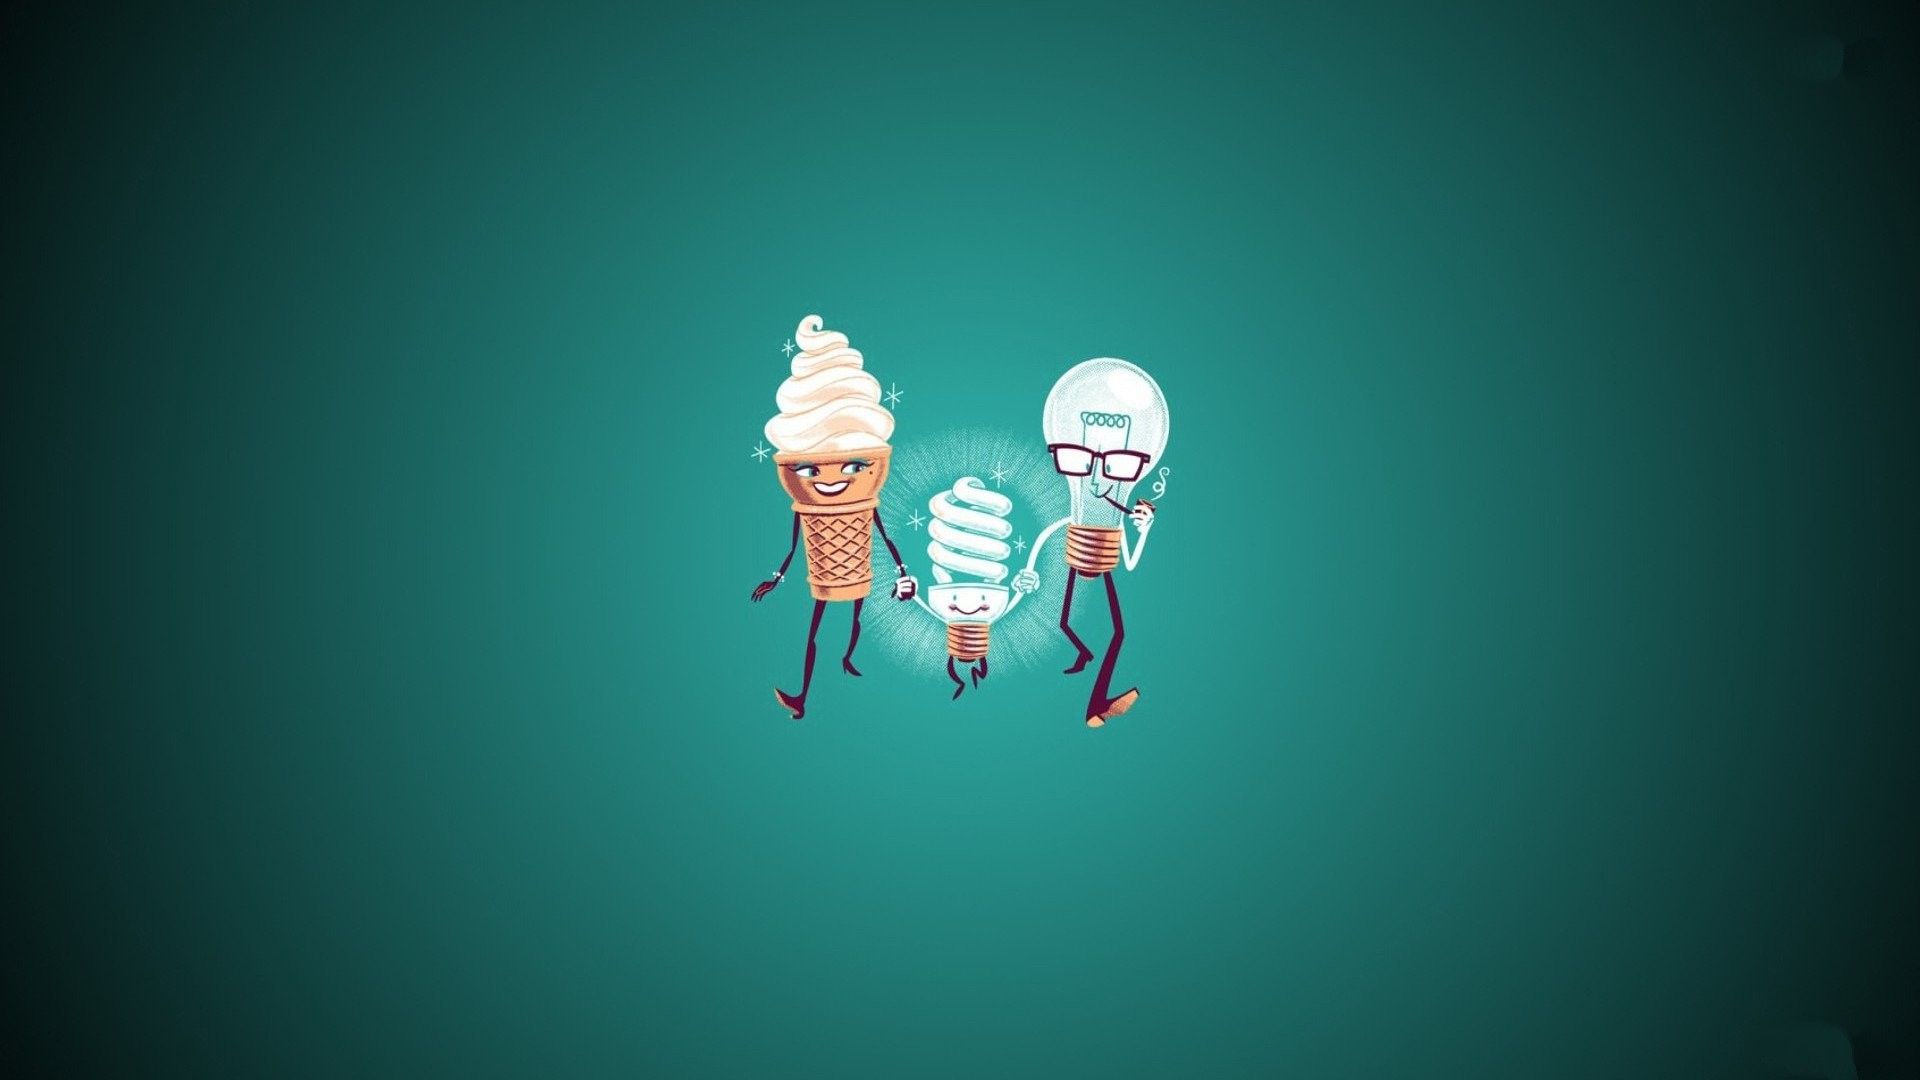 Res: 1920x1080, hd cute ice cream photos hd desktop wallpapers smart phone background  photos download free images widescreen desktop backgrounds dual monitors  ultra hd ...